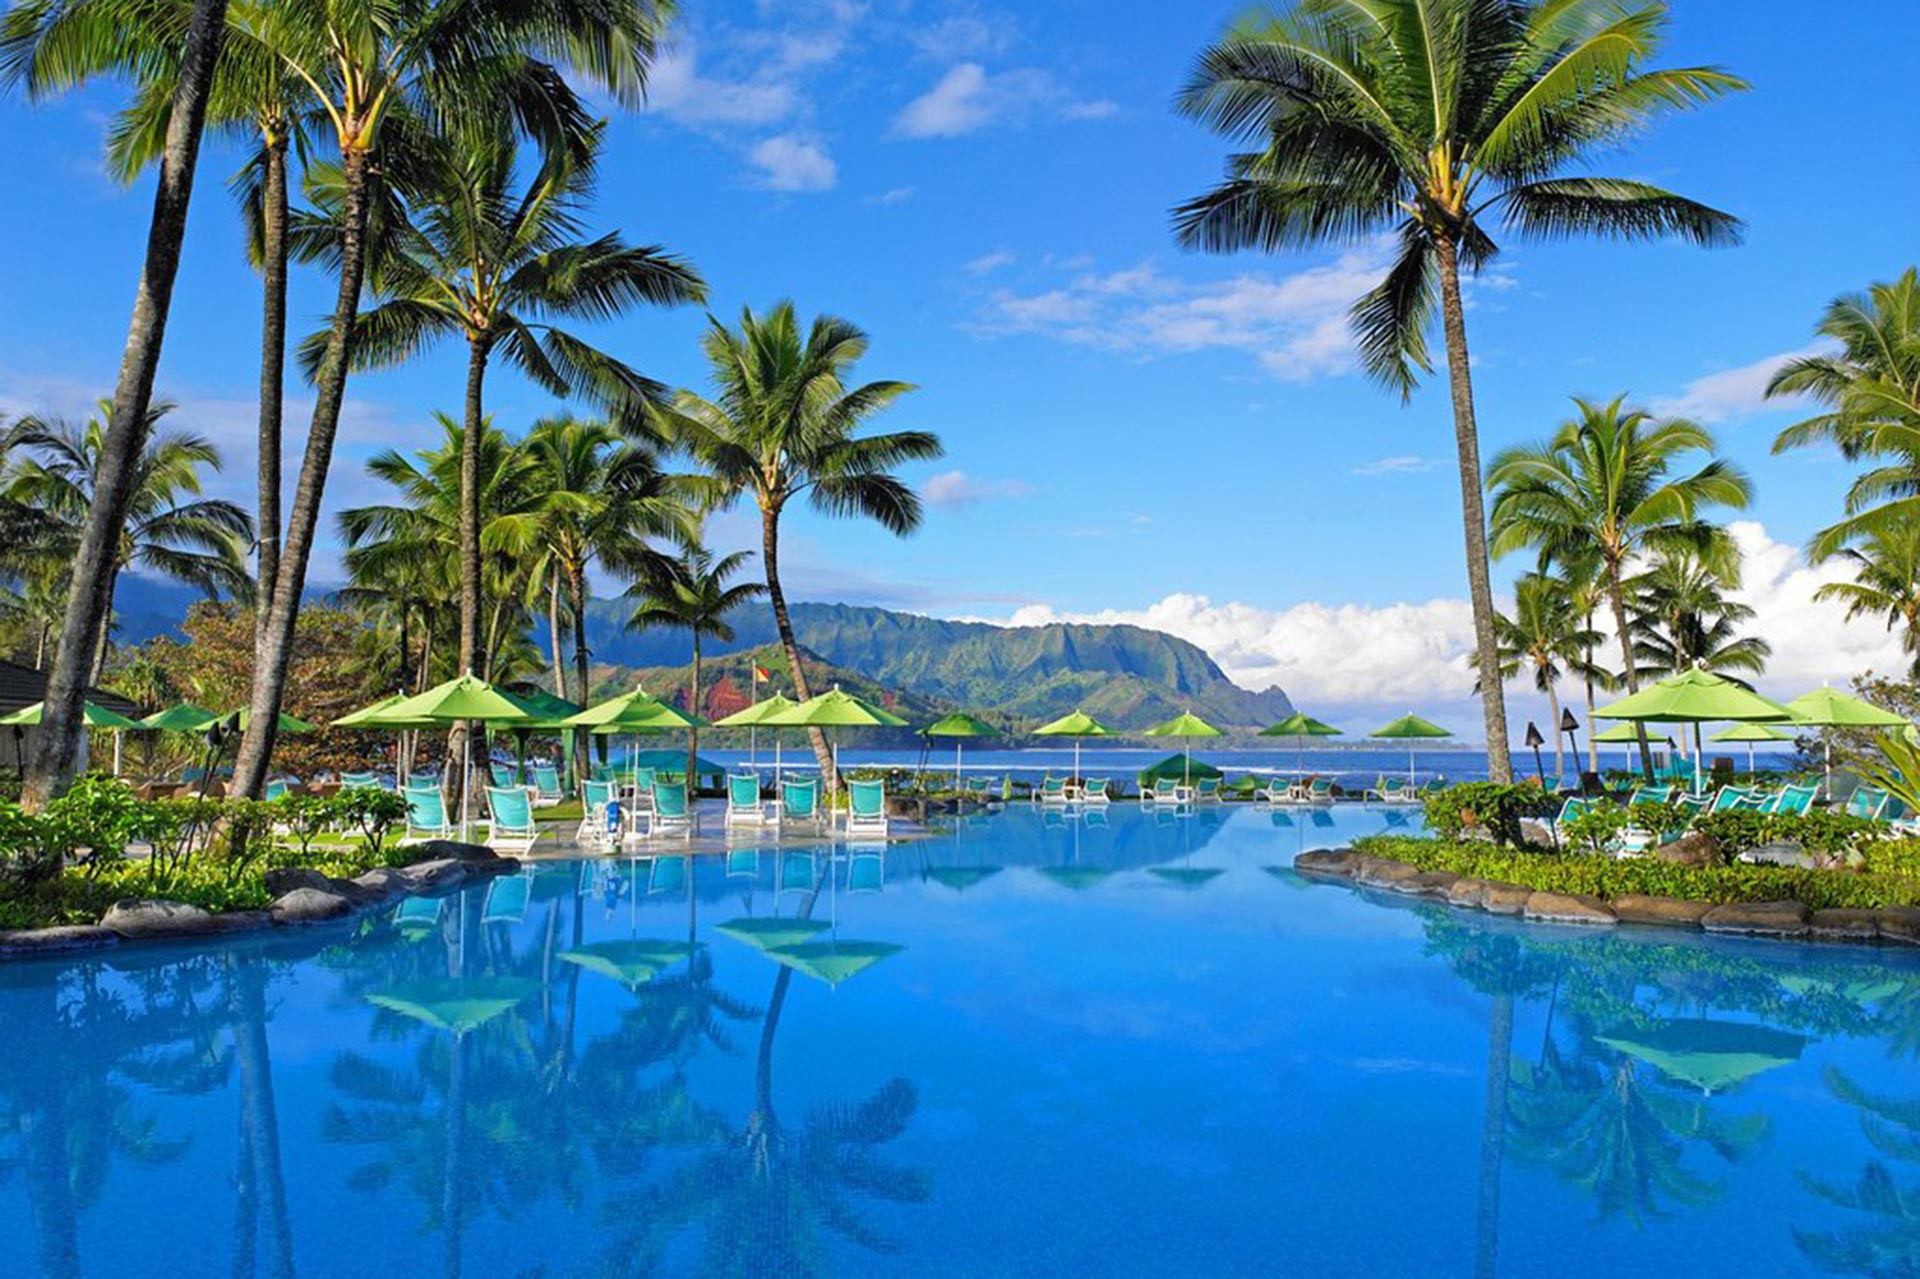 St. Regis Princeville Resort on Kauai's North Shore